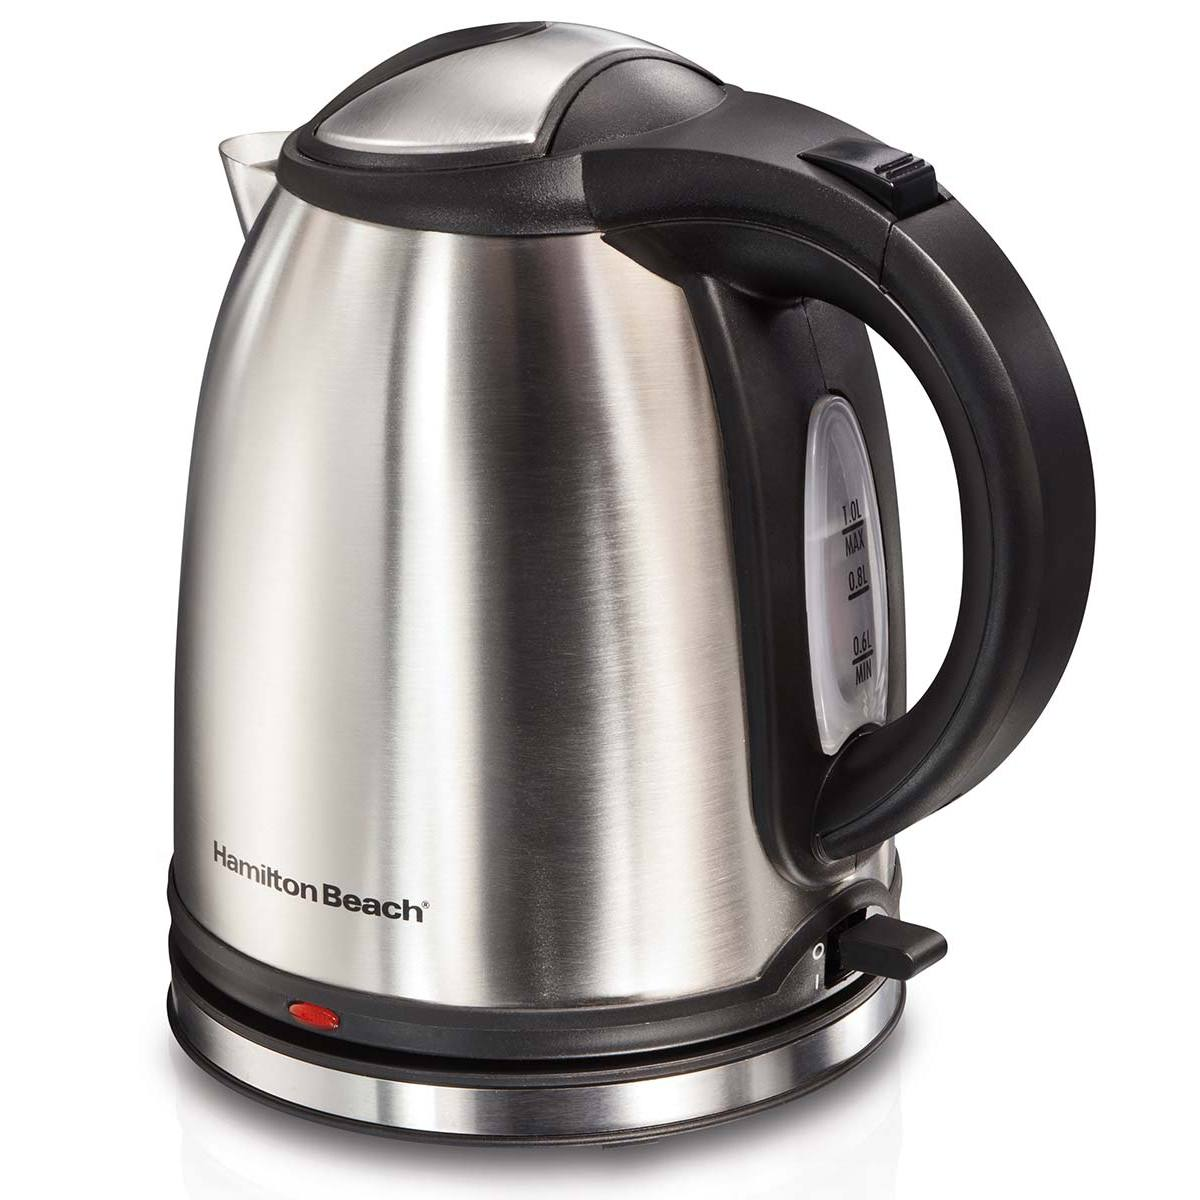 1 Liter Stainless Steel Electric Kettle (40995)